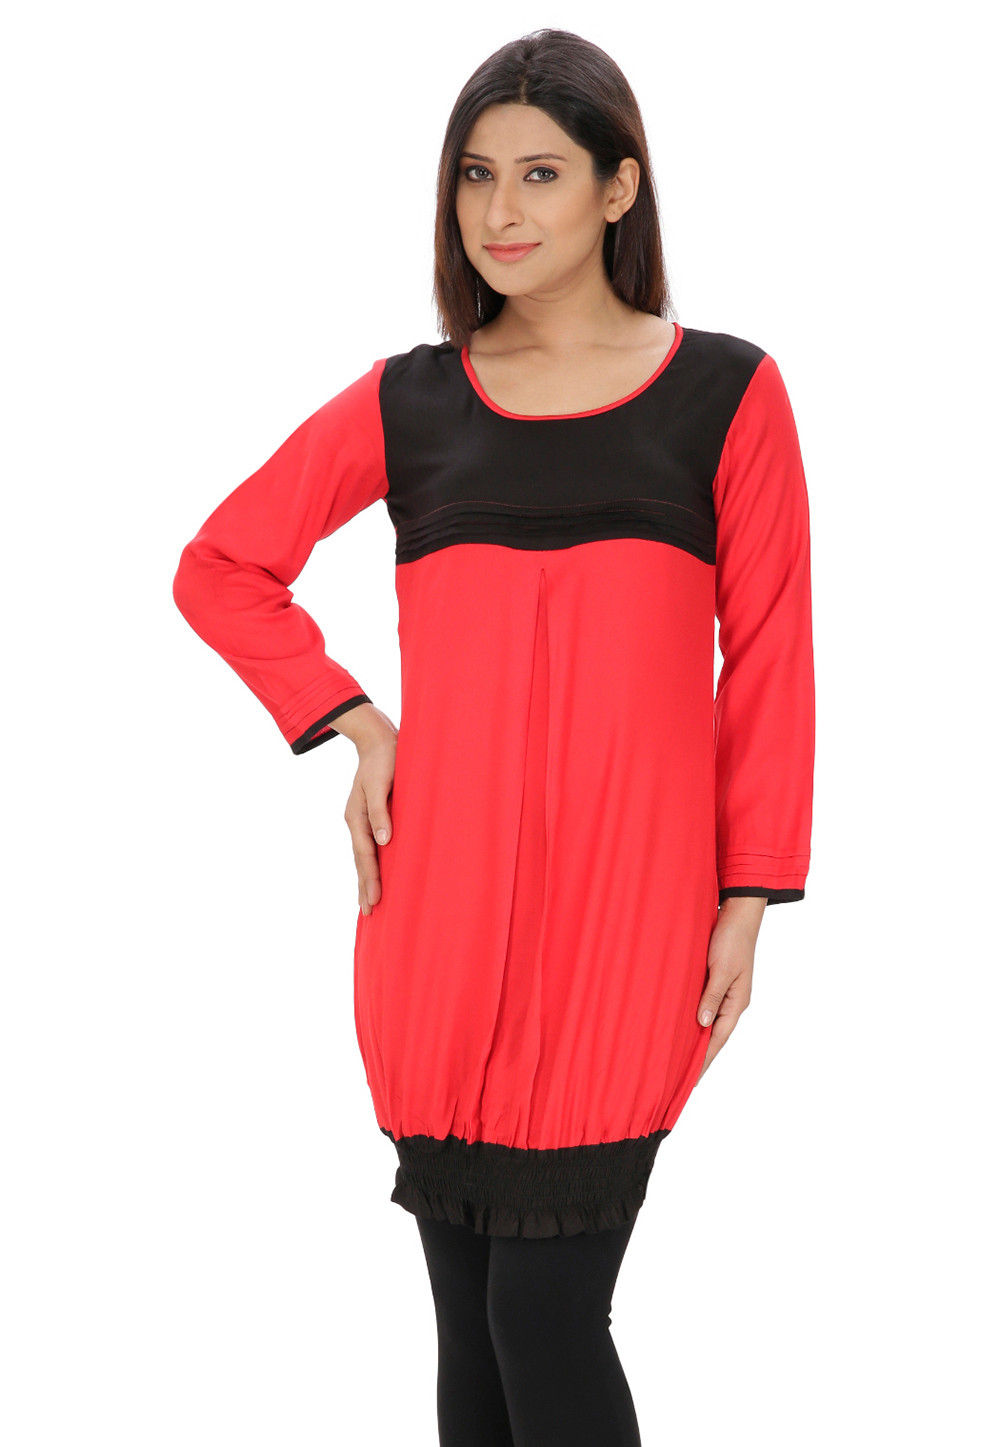 Plain Rayon Cotton Tunic in Coral and Black